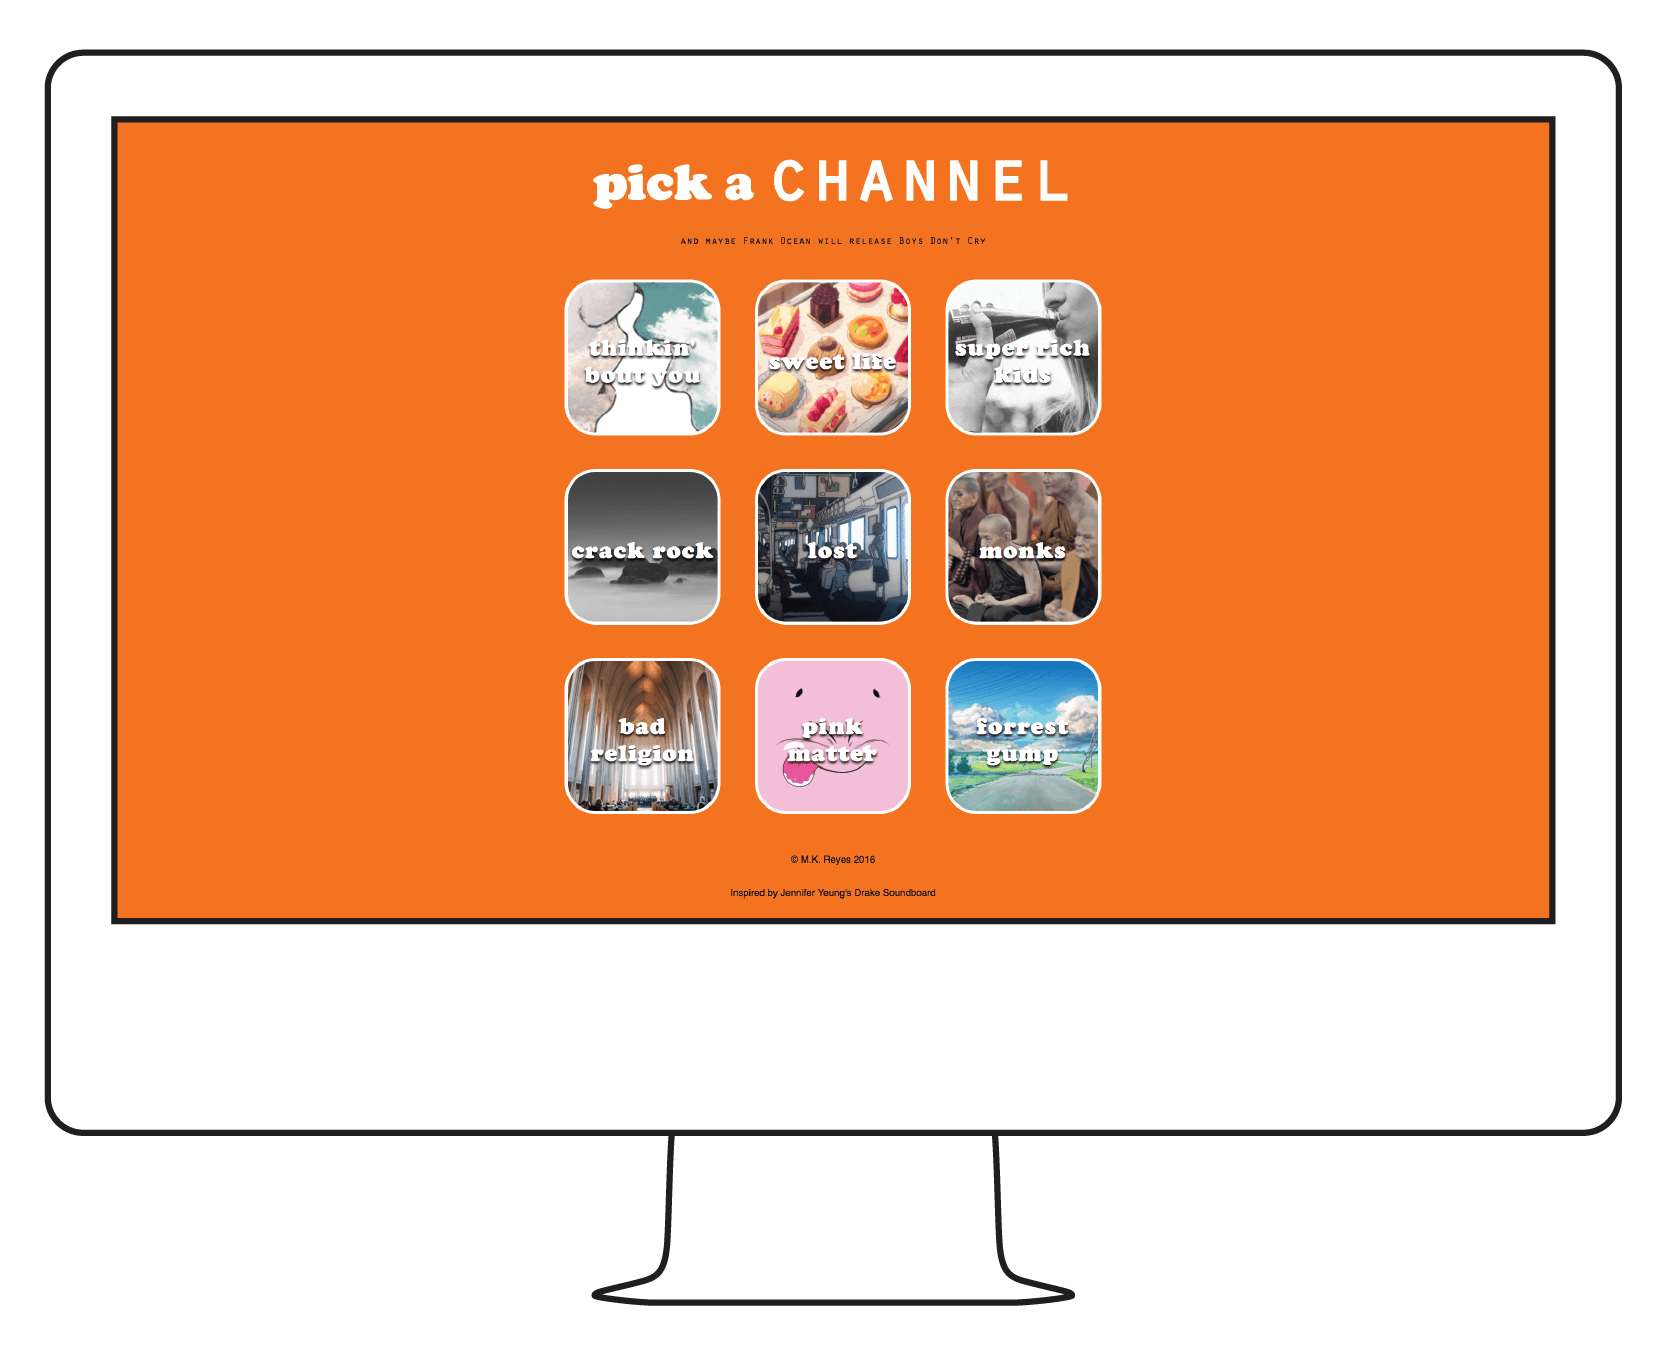 Channel O is an interactive soundclip board of Frank Ocean's Channel Orange album.